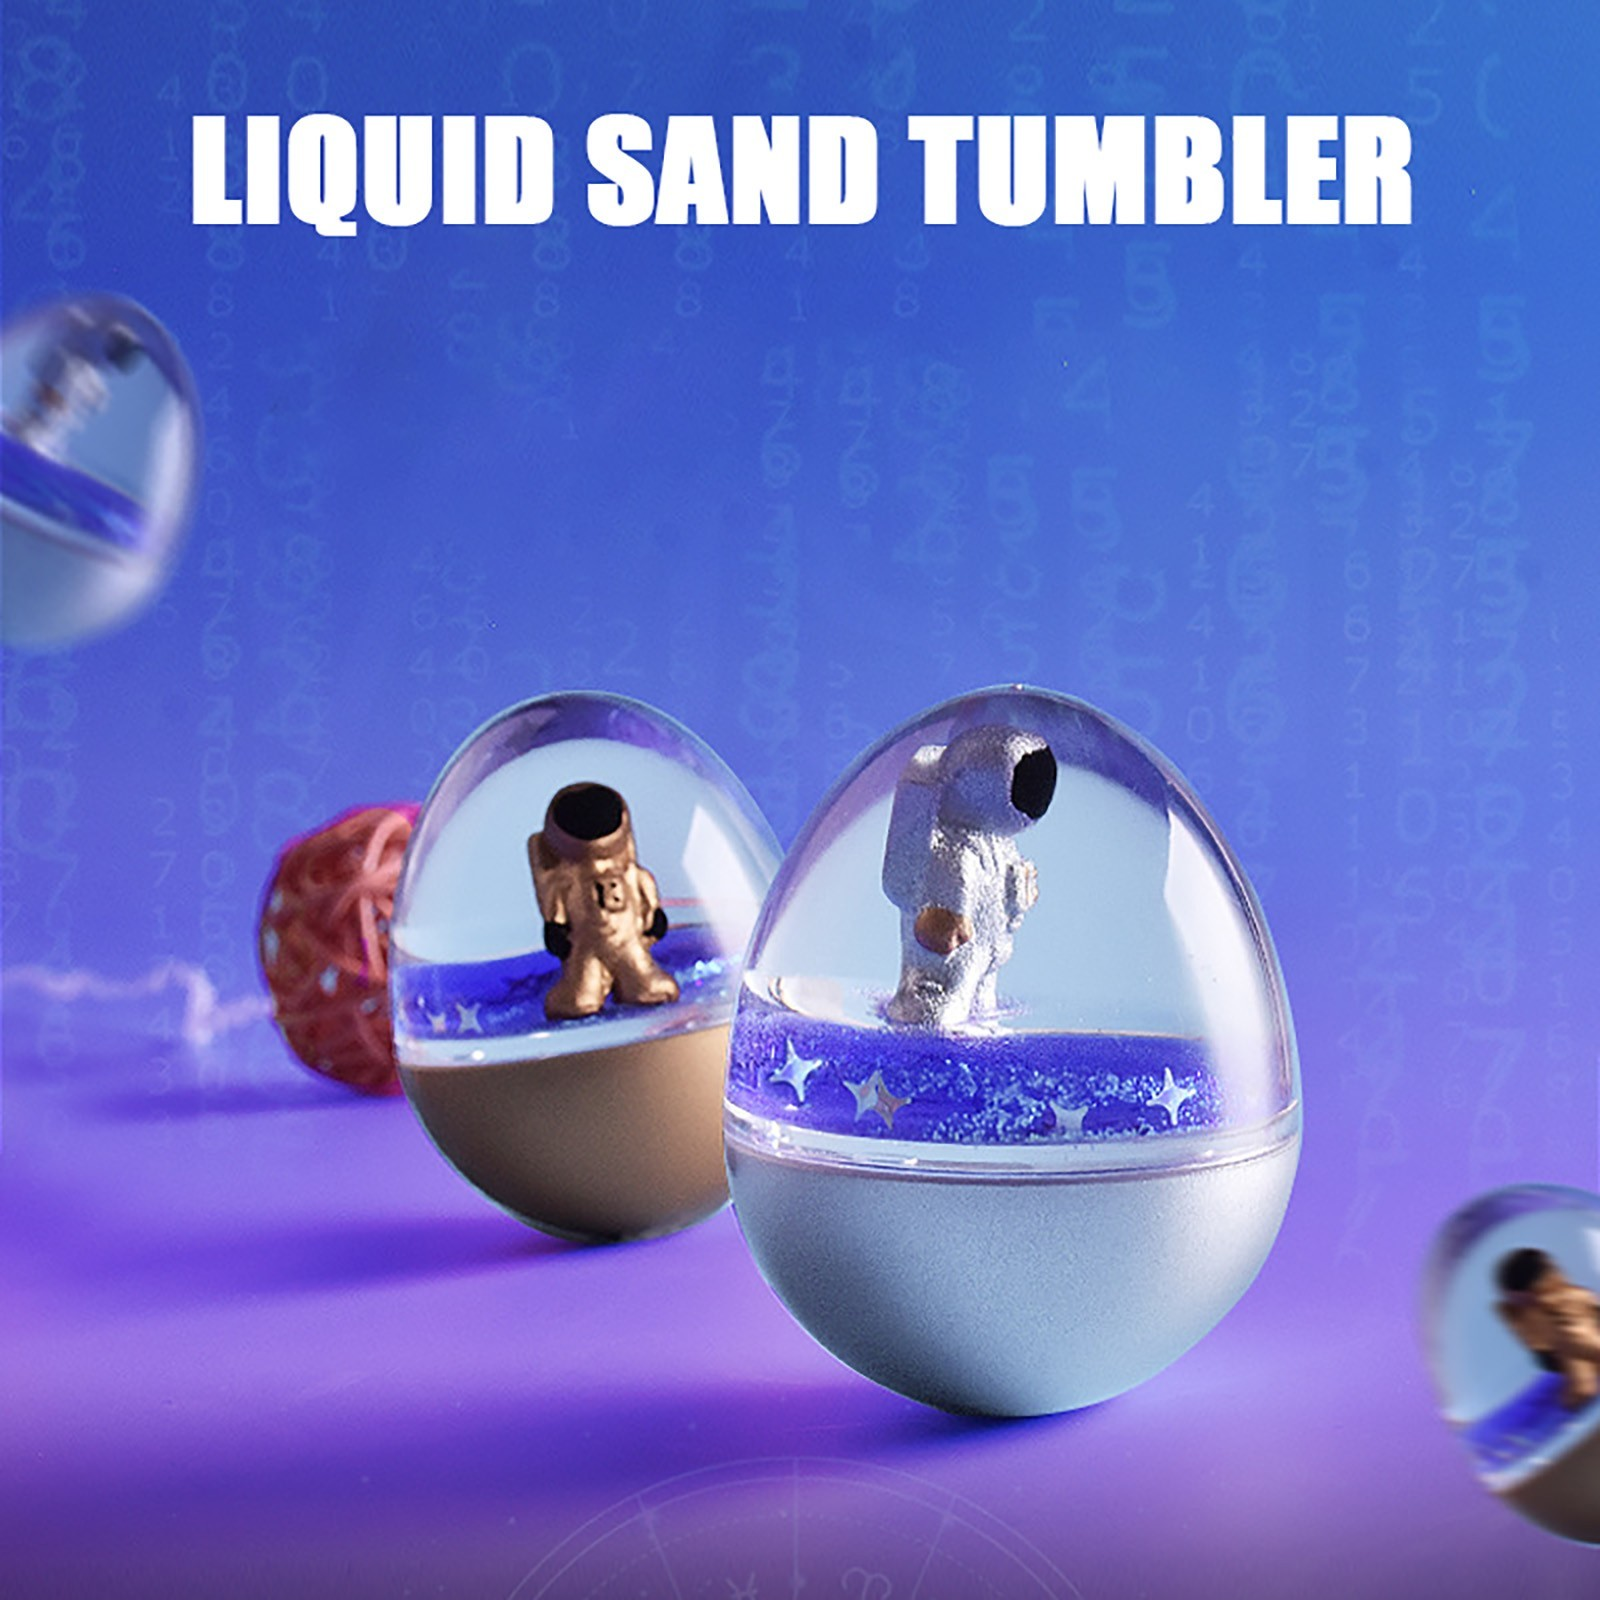 Astronaut Floating Sand Tumbler Toy Cartoons Creative Personality New Toys for Adults Kids Personalized Gift 20ML